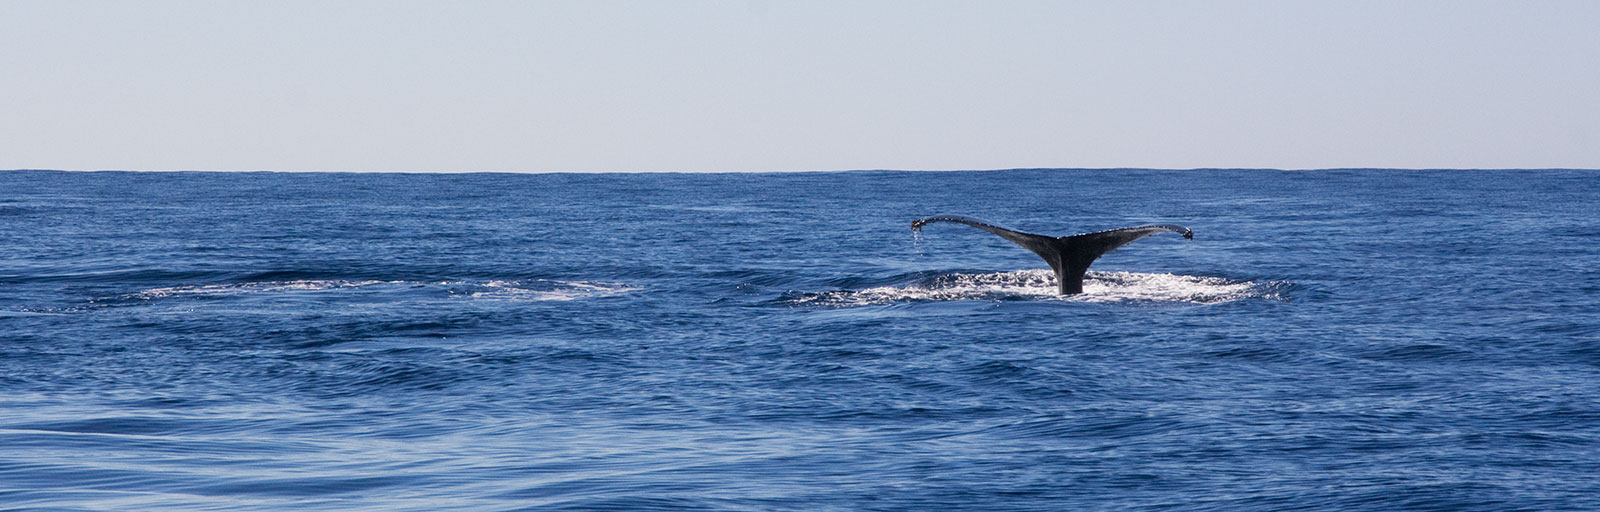 Whale Watching & Yoga Retreat in Mexico: Whale Tail